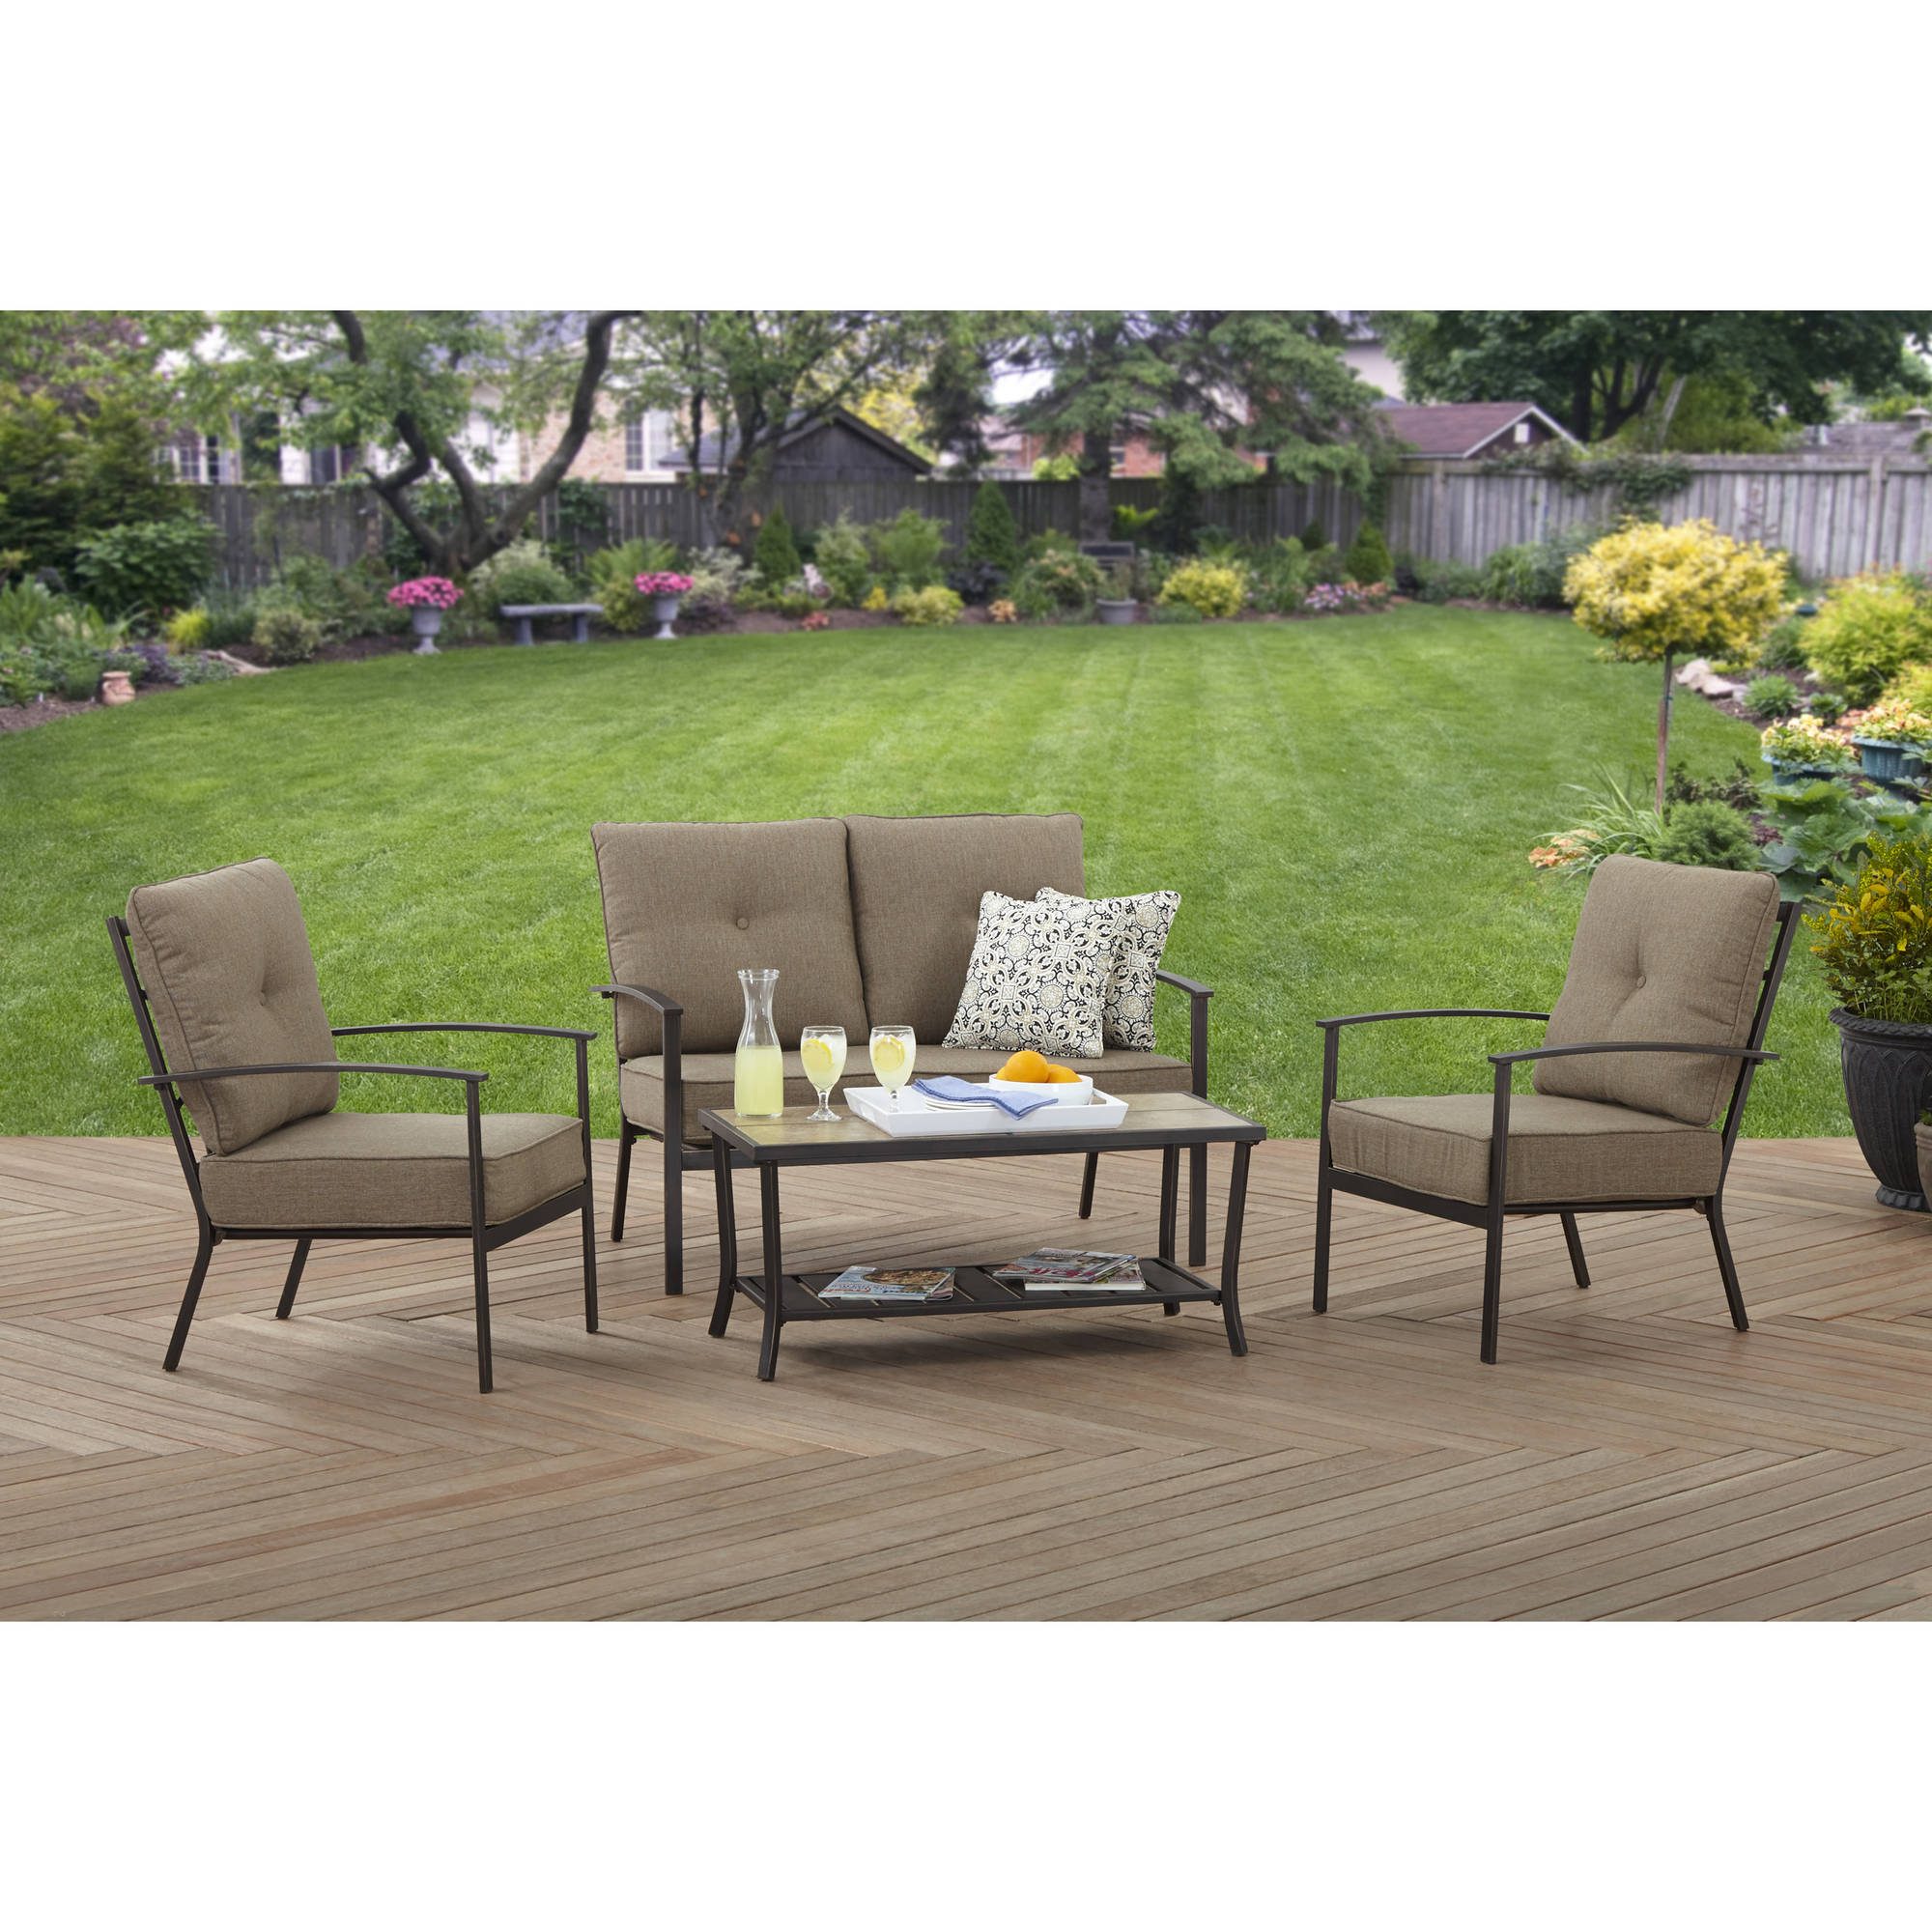 Better Homes and Gardens Peachtree Park 4 Piece Conversation Set